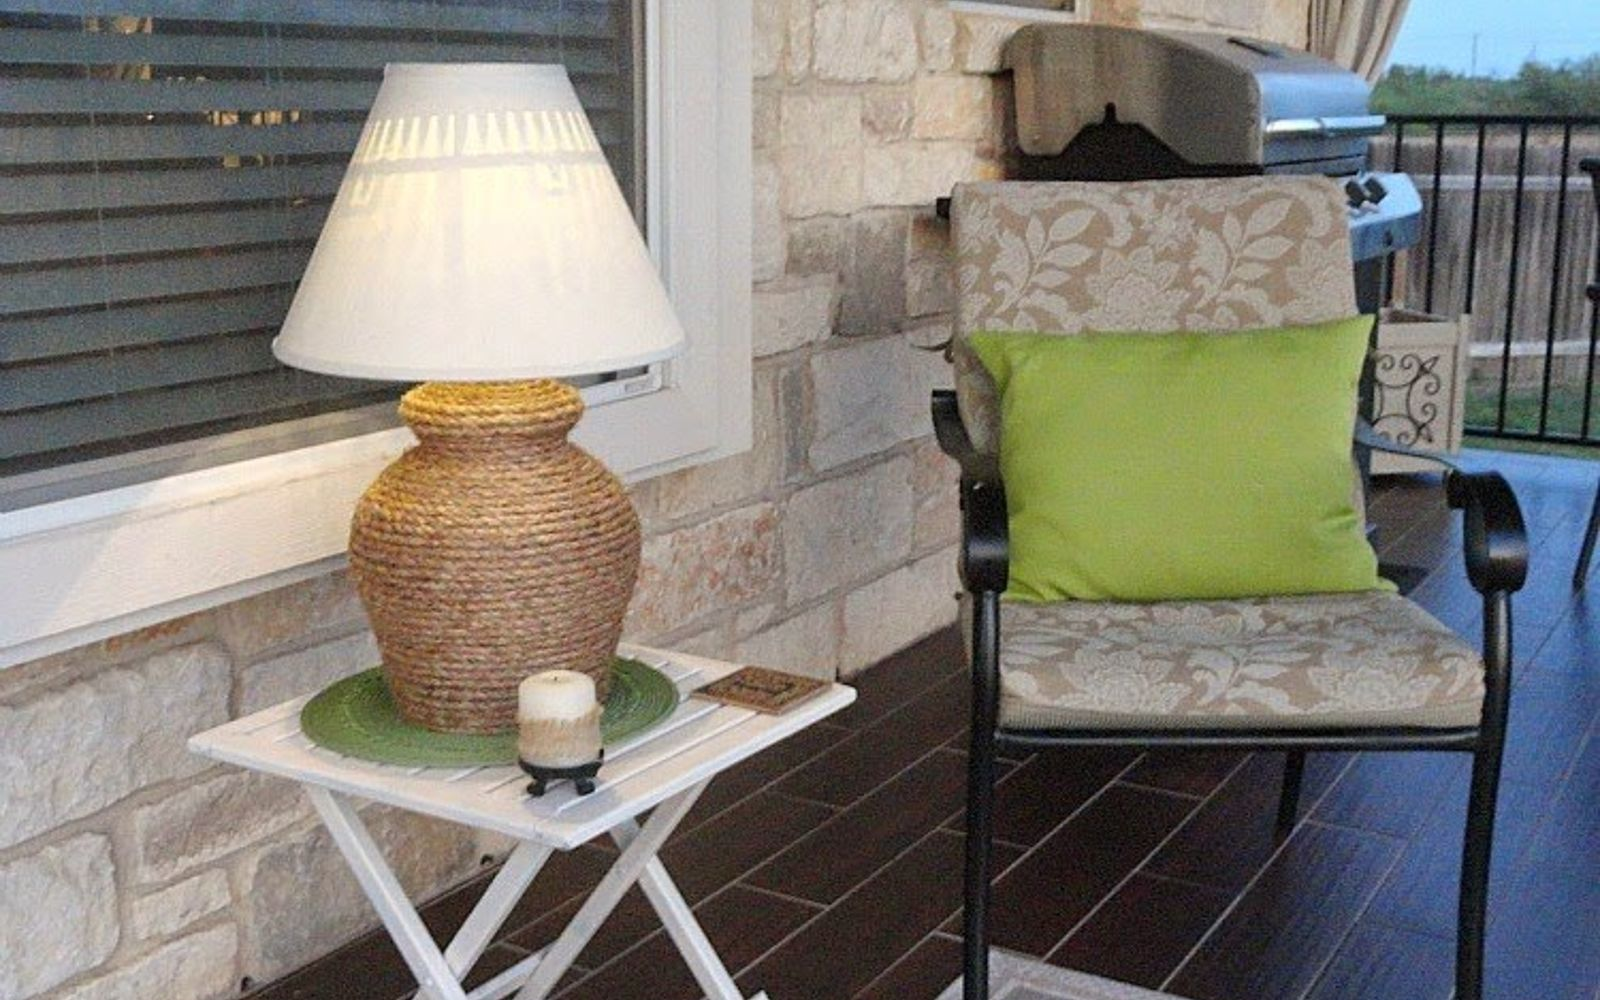 s 16 stunning ways for you to add solar lighting, Wrap Rope Around A Lamp